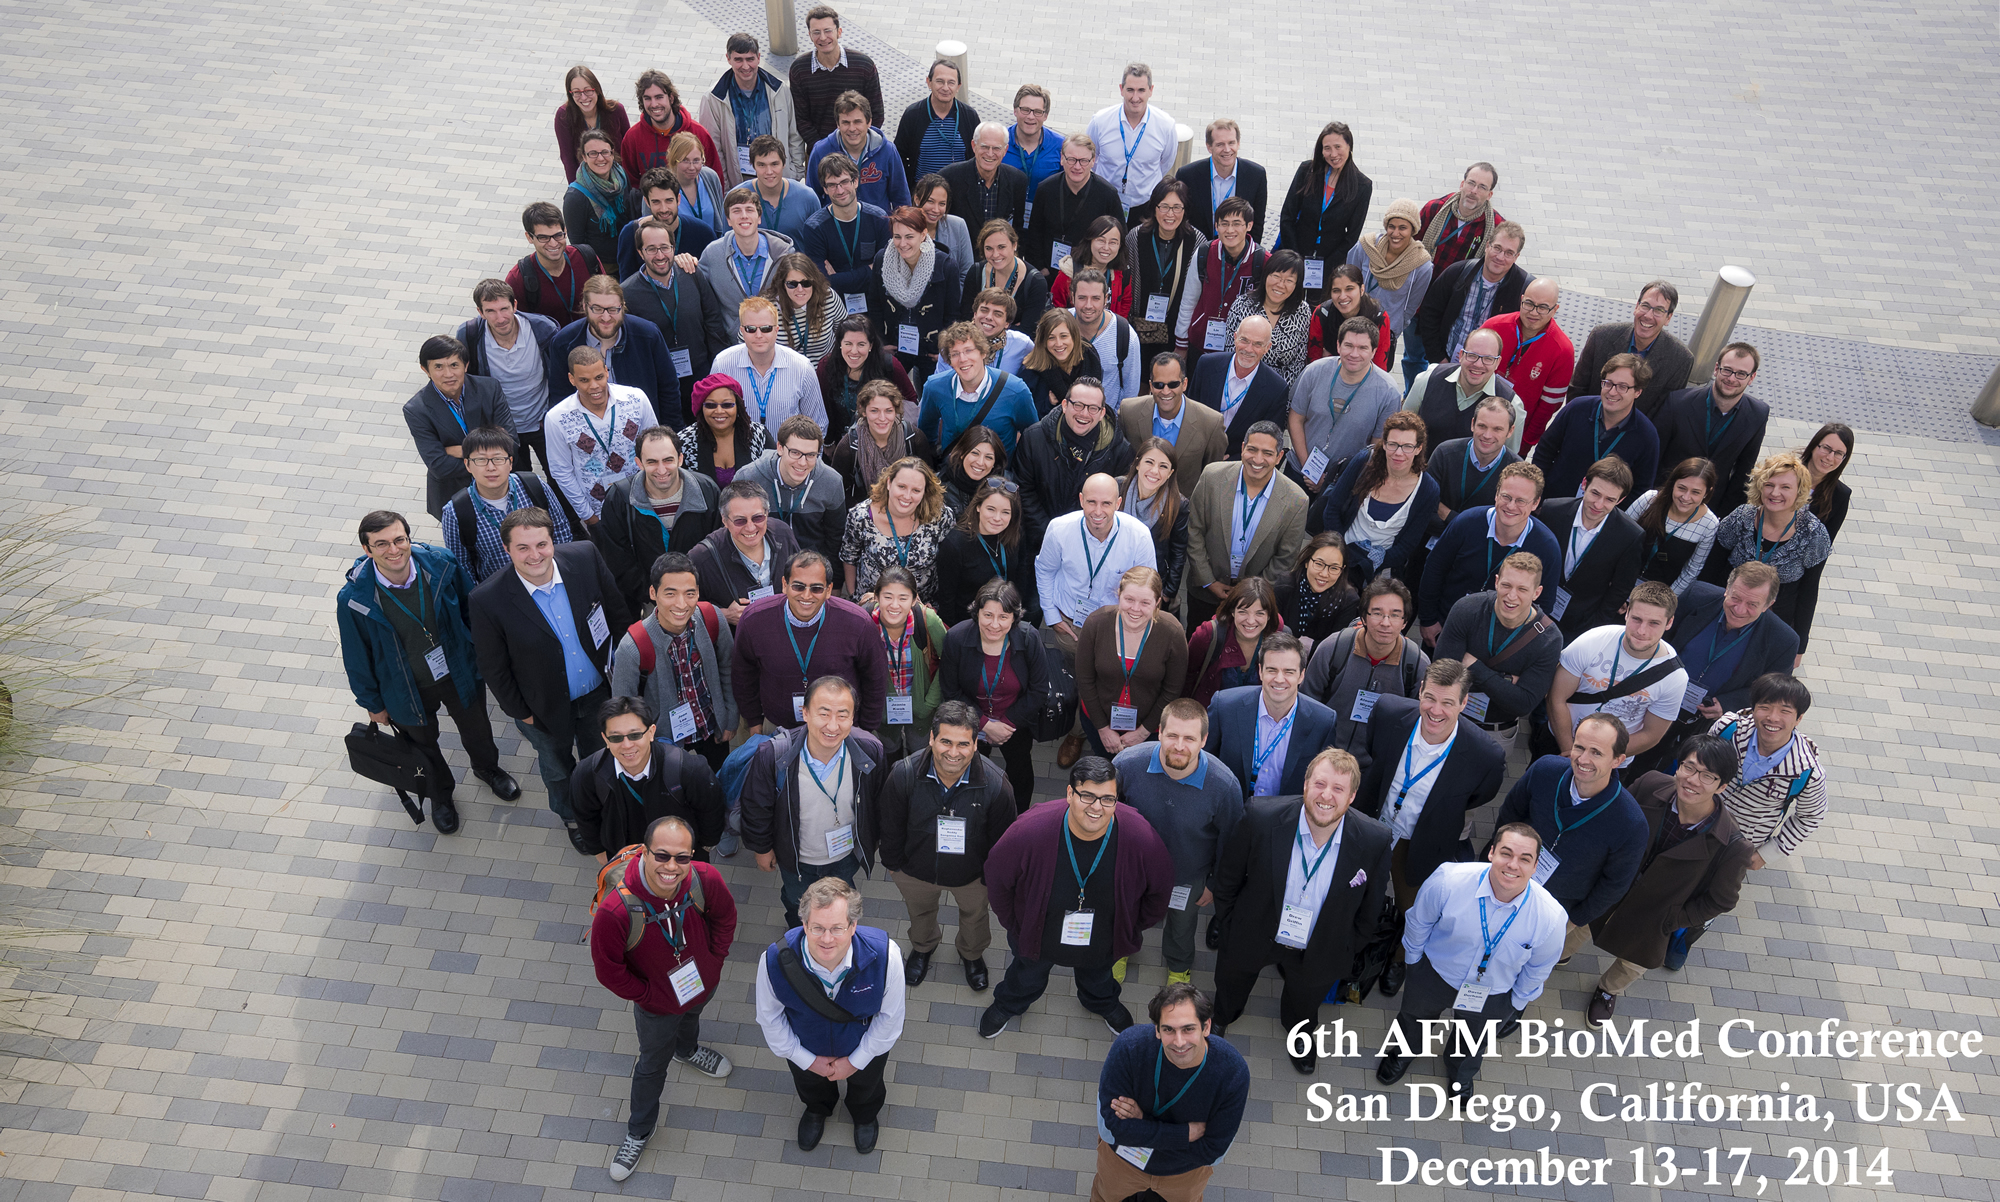 AFM BioMed Conference San Diego 2014 summary photo.